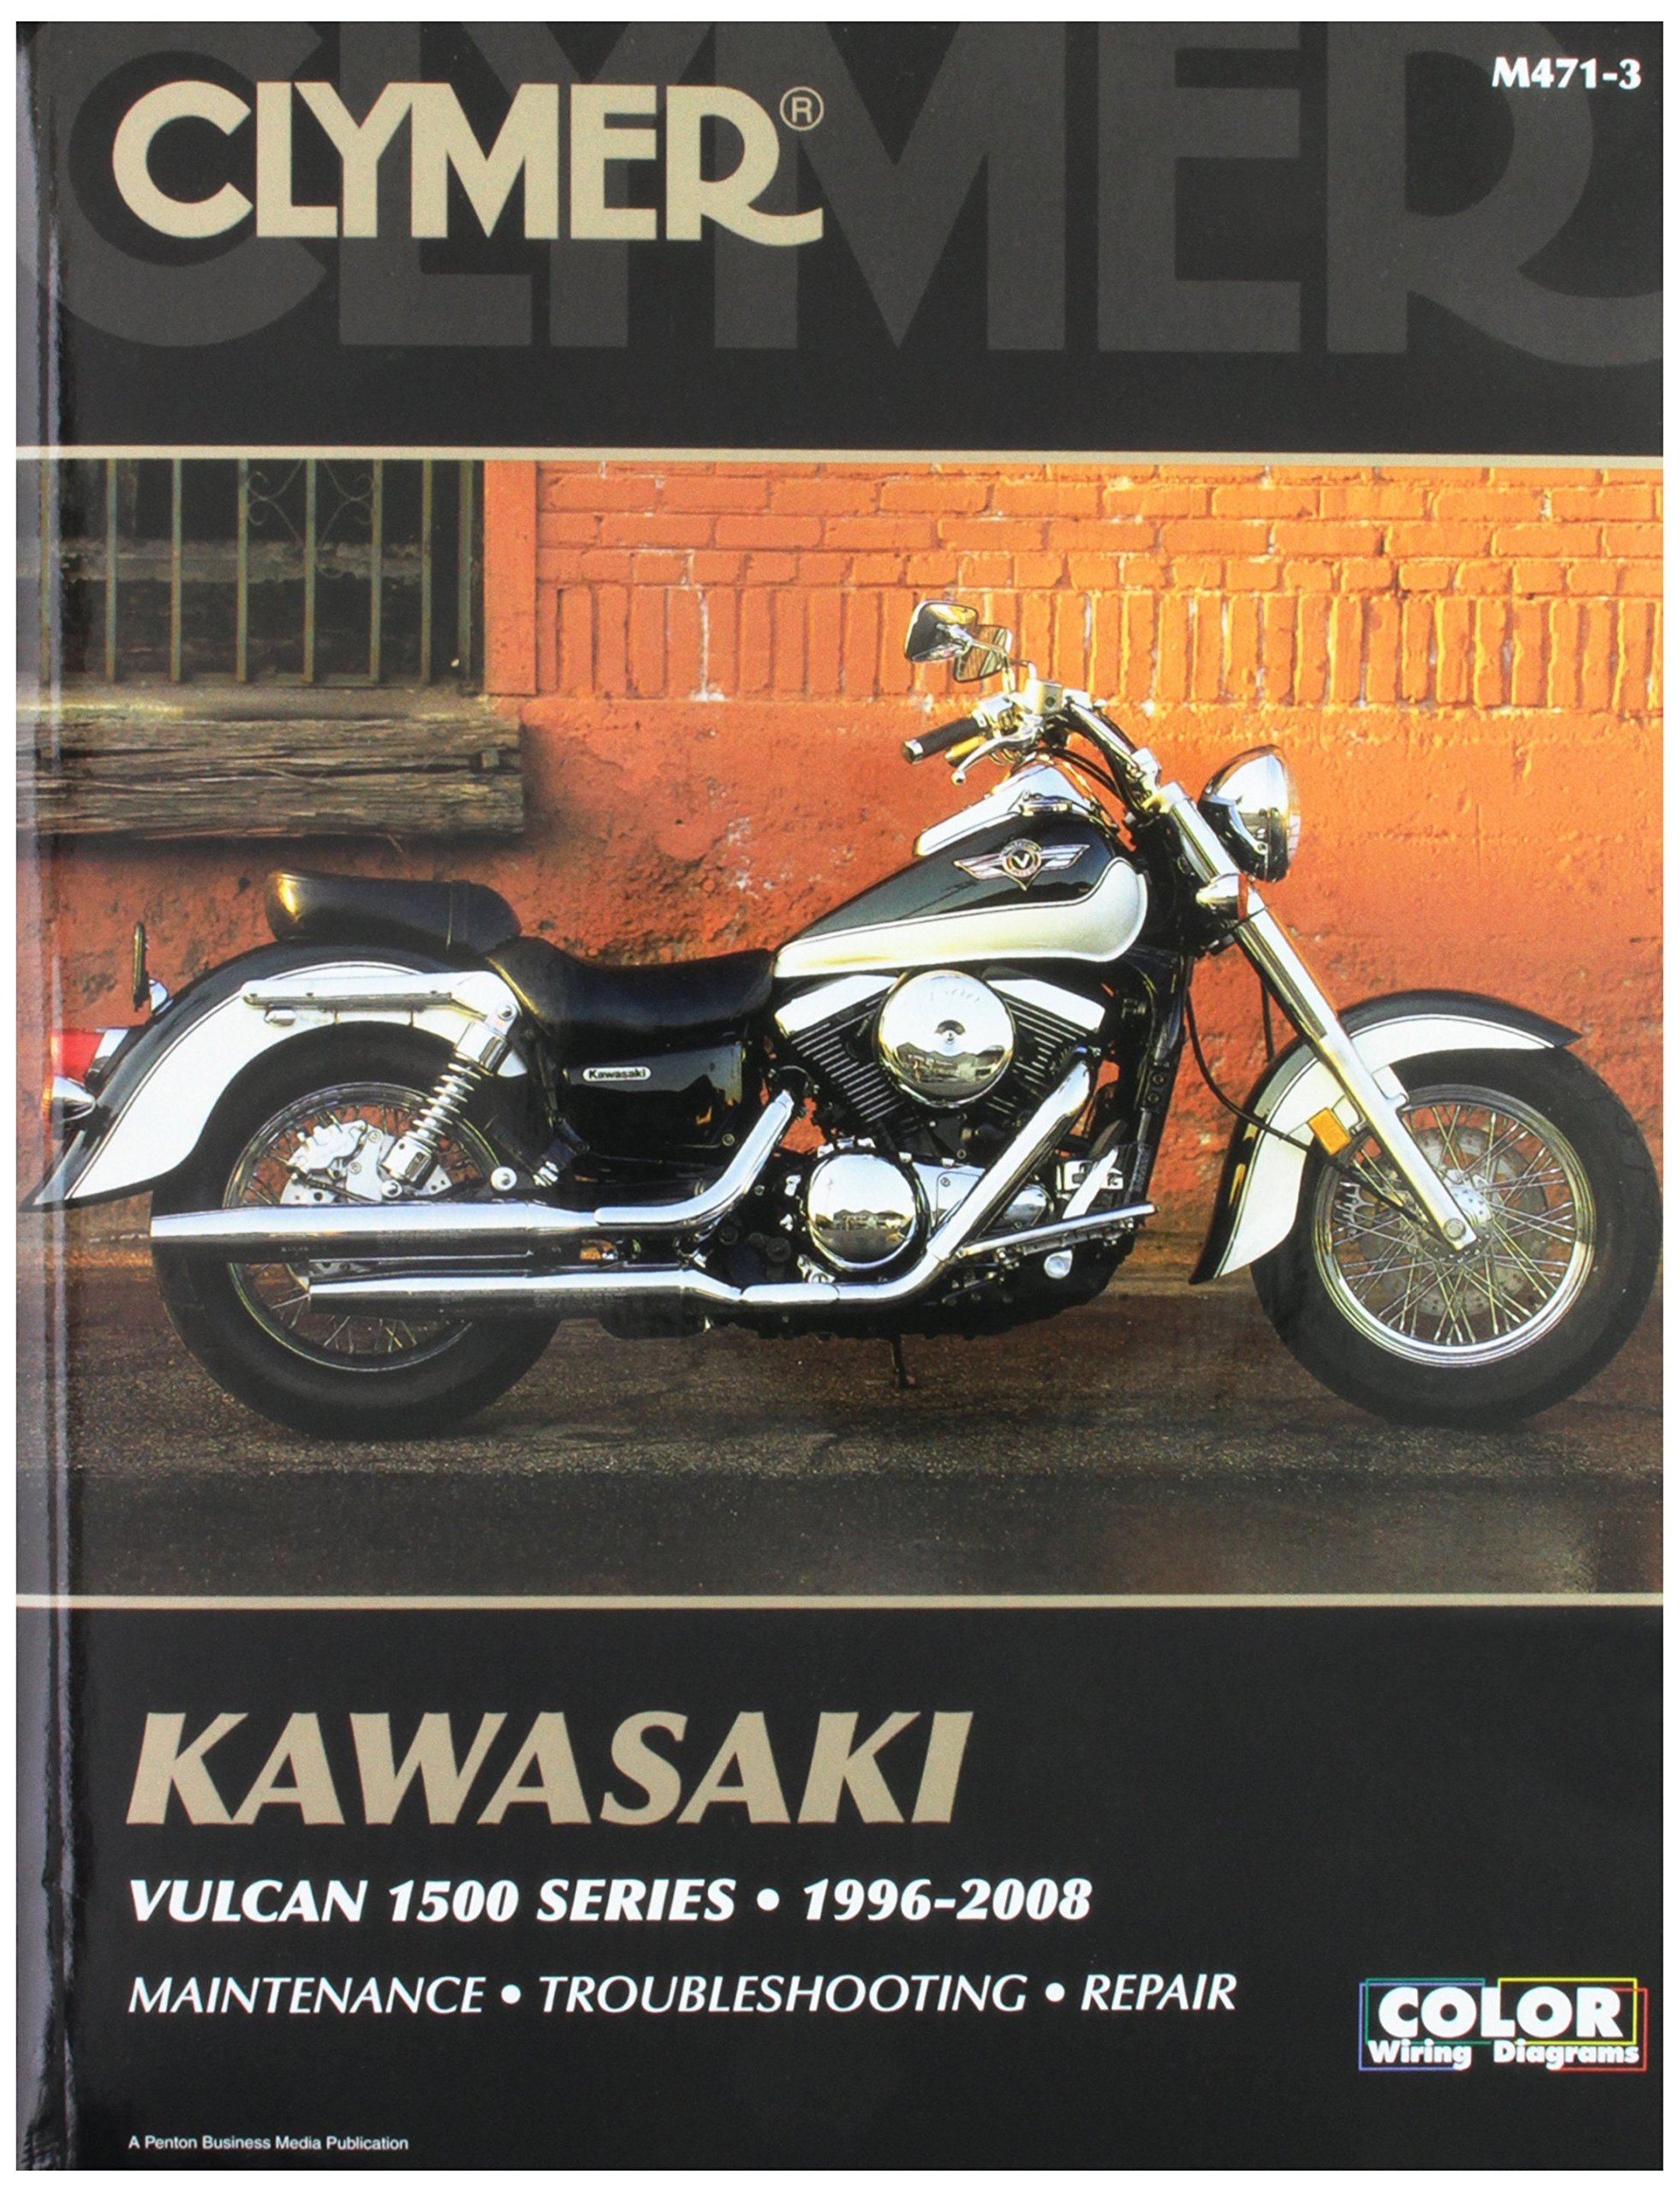 2008 Wiring Diagram Kawasaki Vulcan 1500 Fi Library 800 Get Quotations Clymer Series 1996